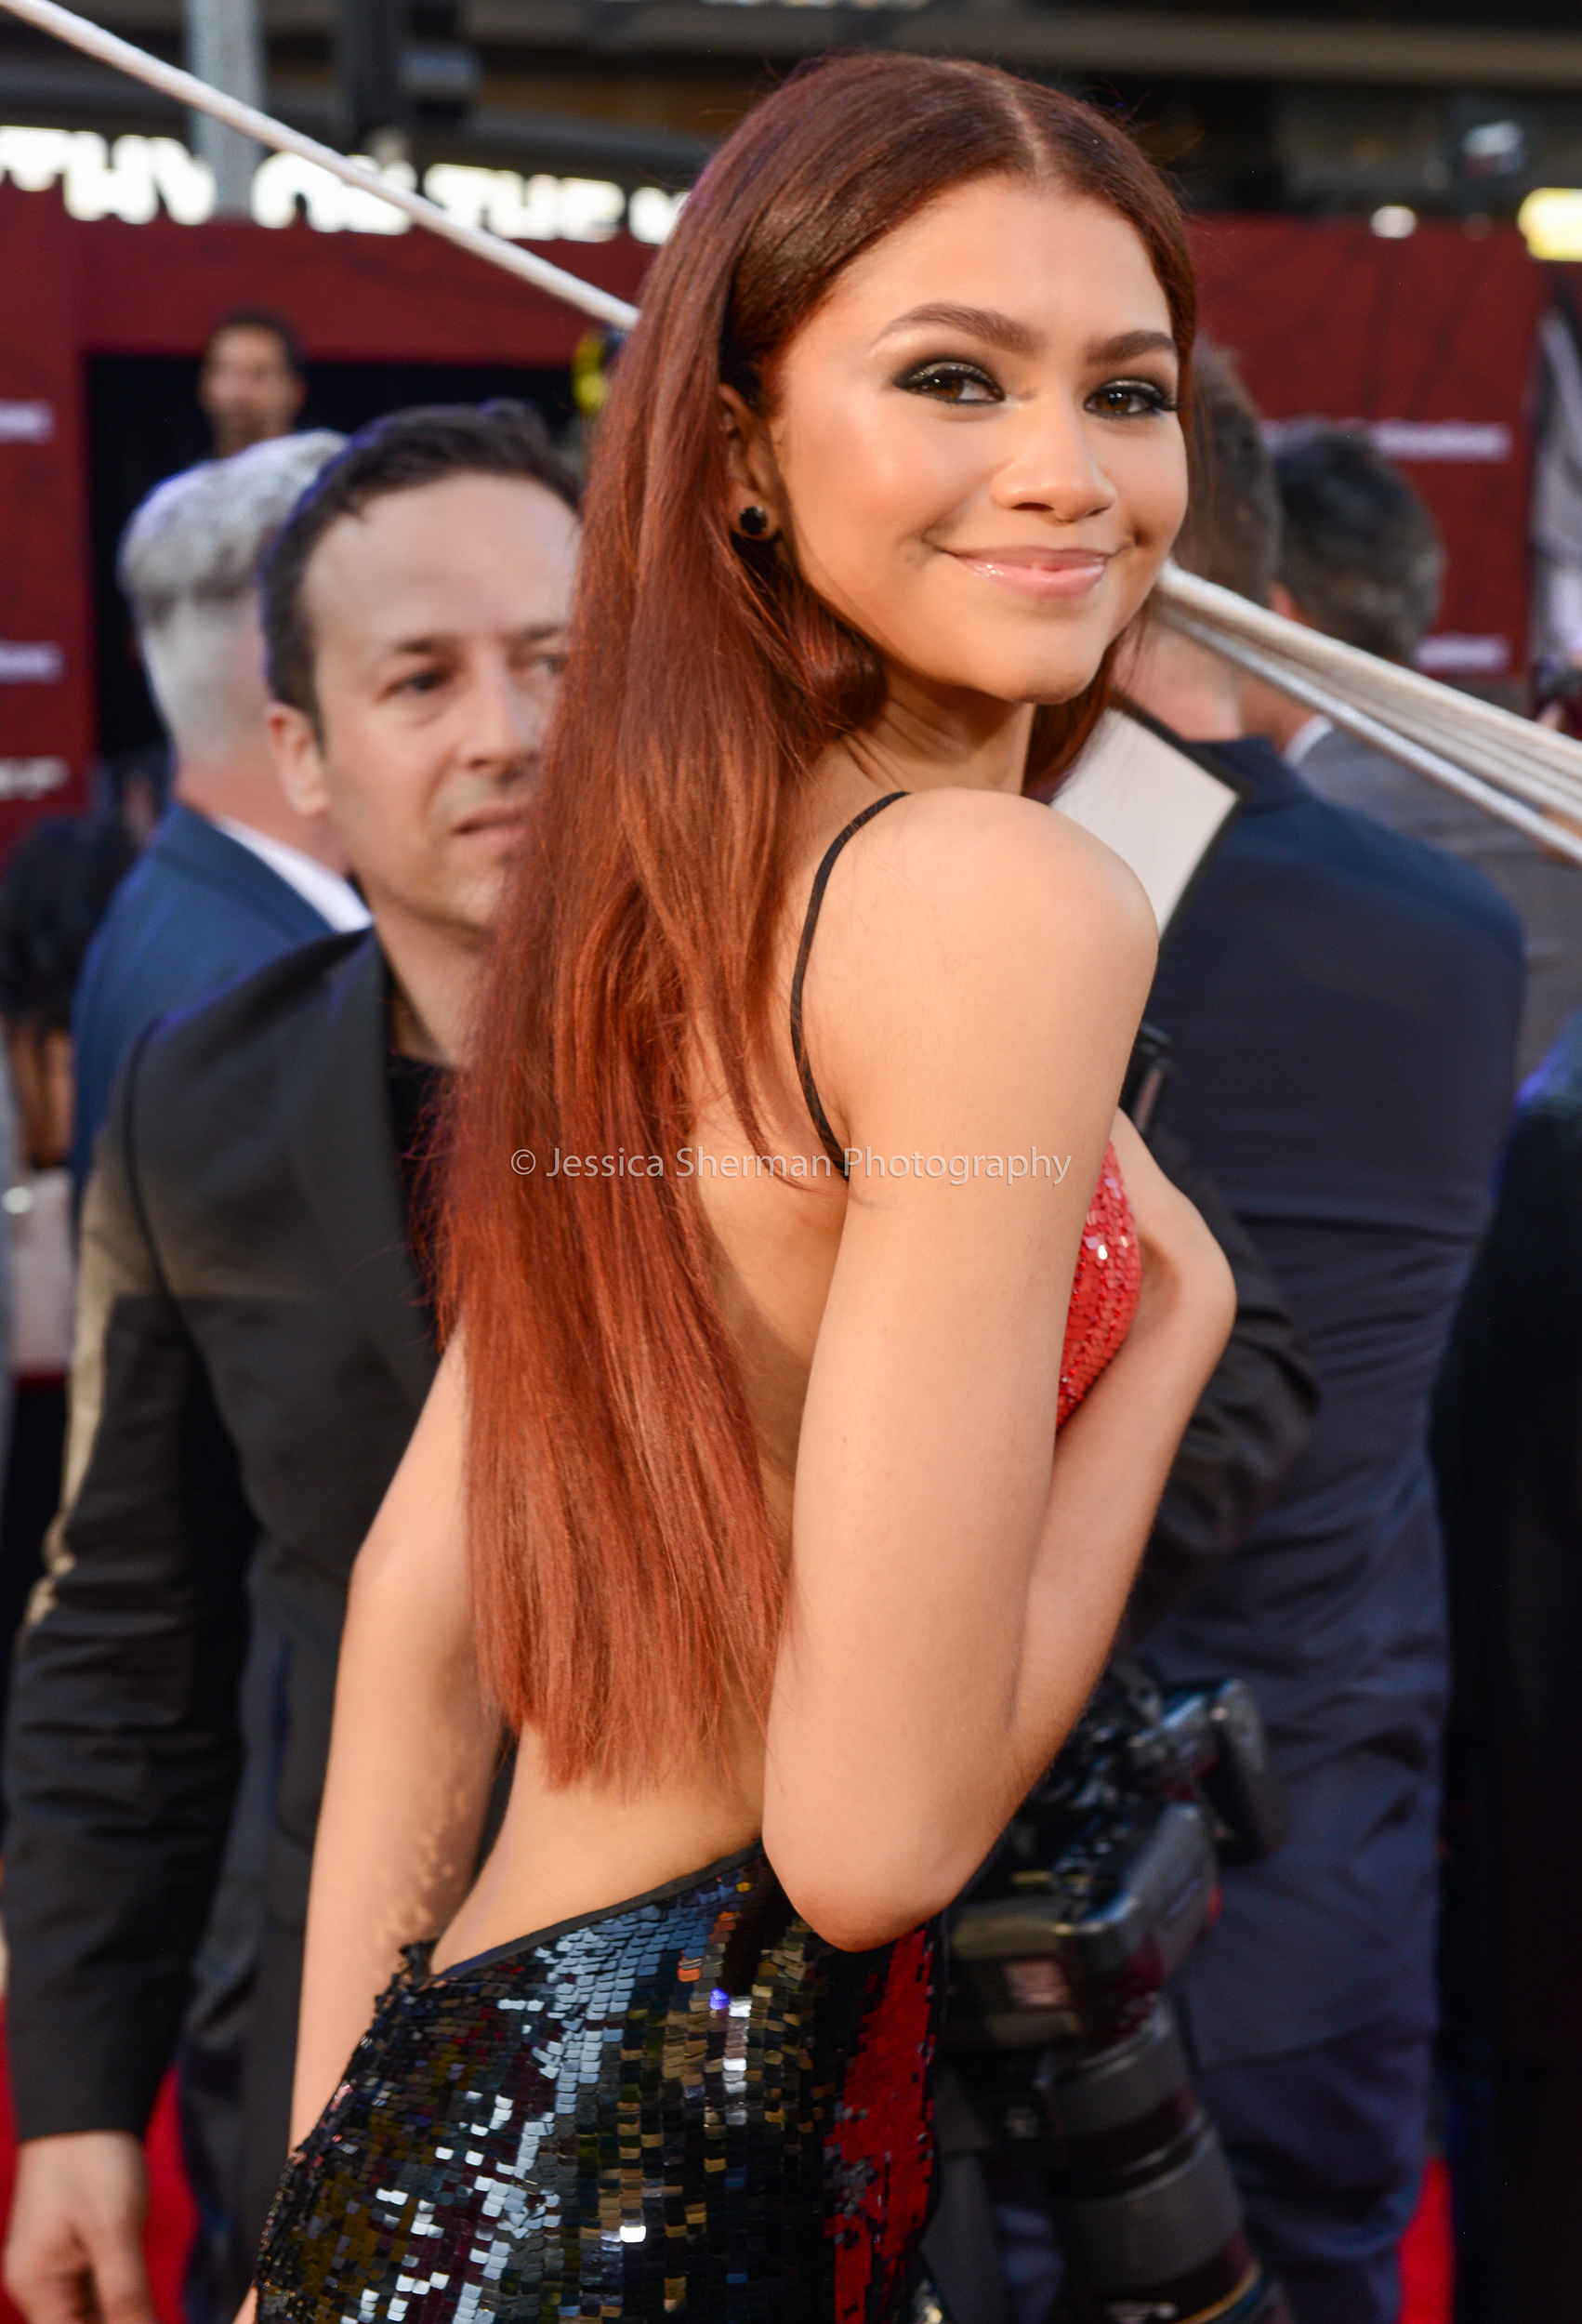 Spiderman-Homecoming-Zendaya-Jessica-Sherman-7083-Site.jpg